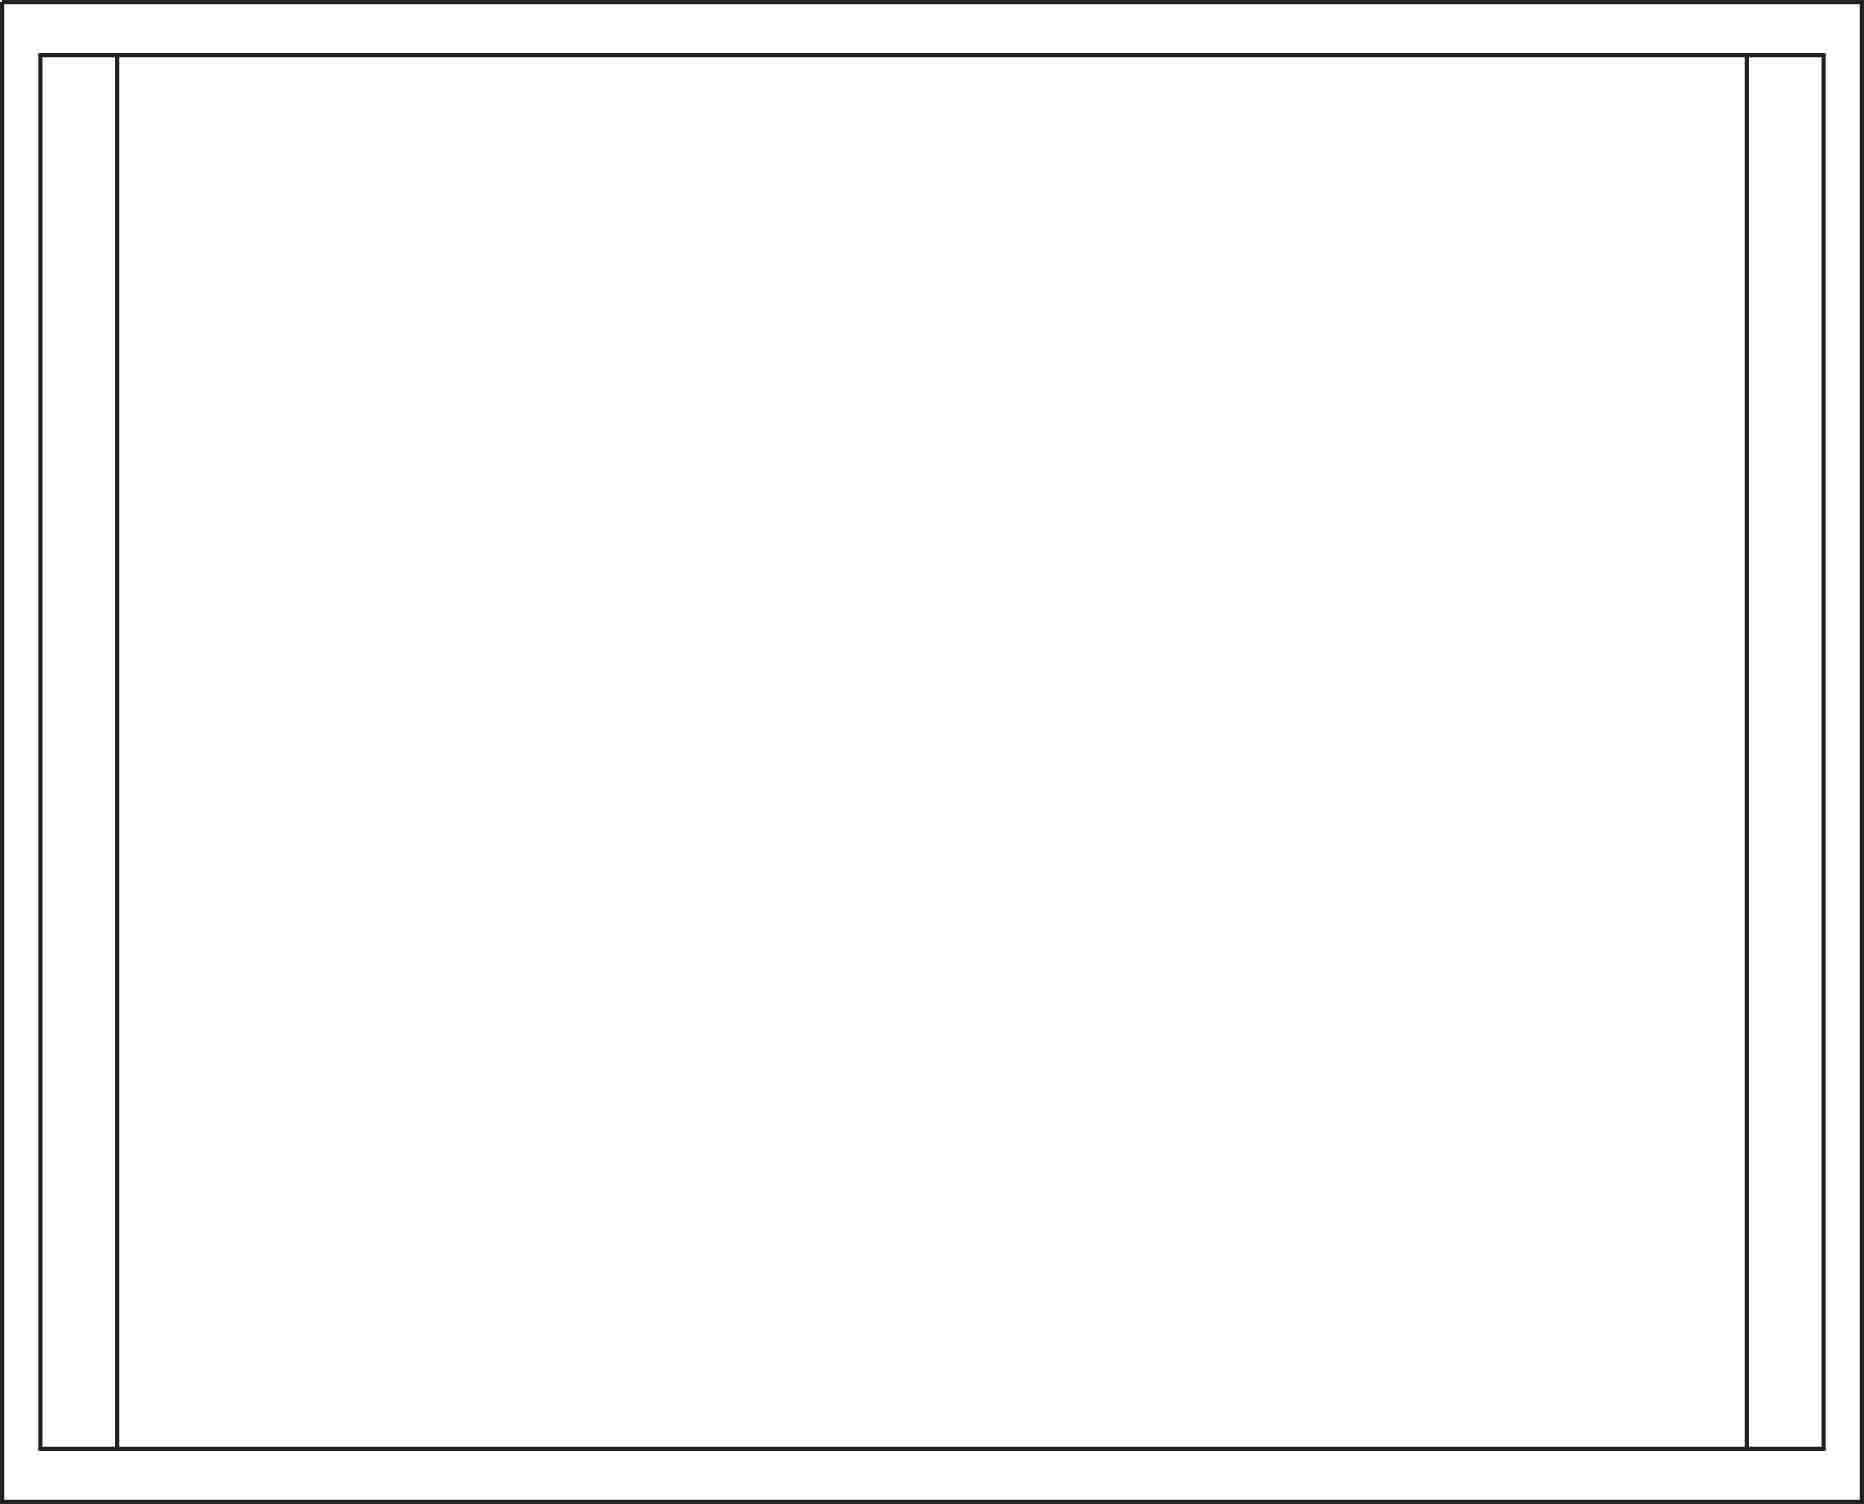 Blank album cover template